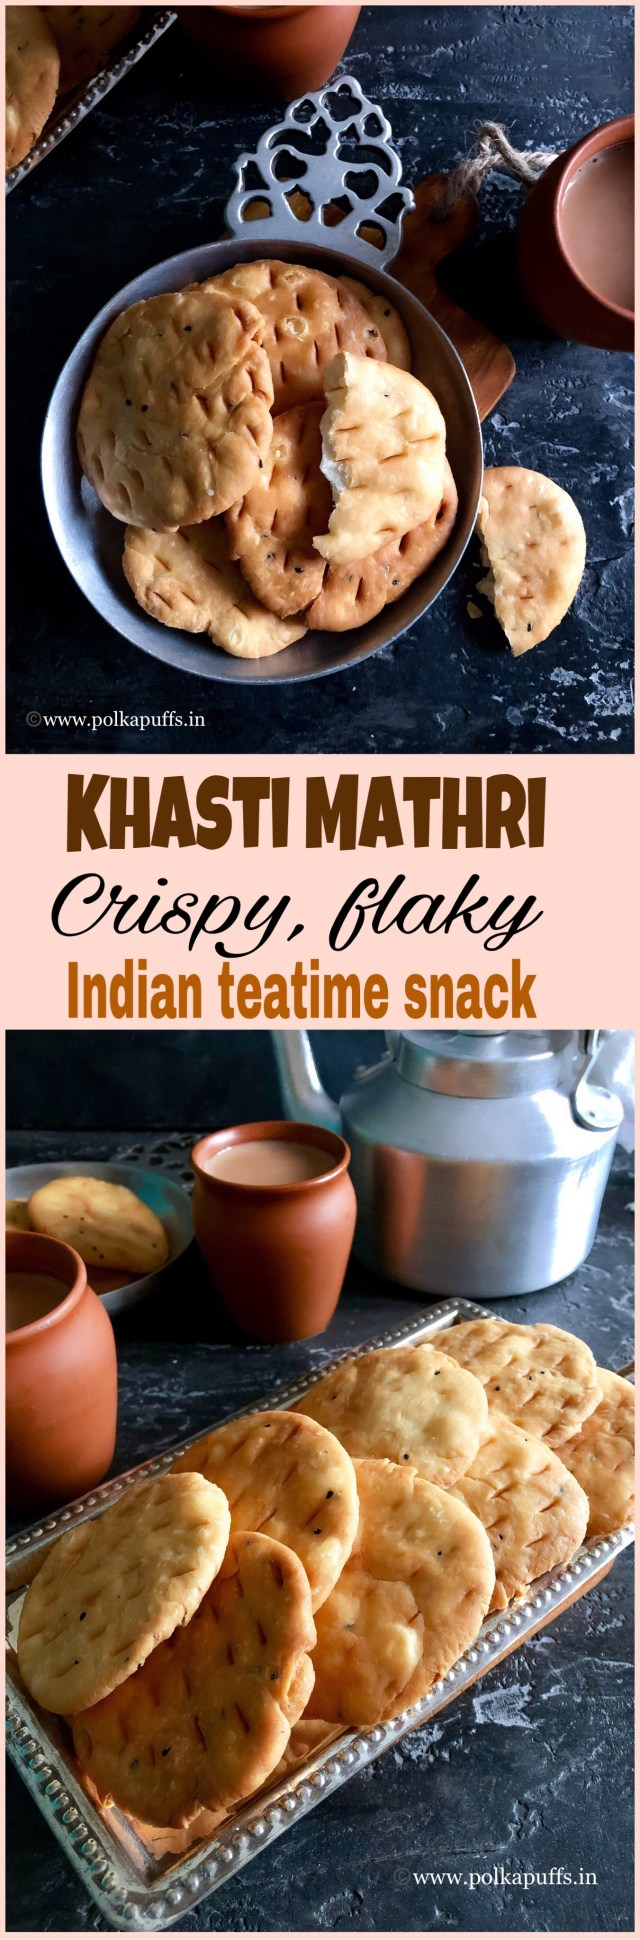 Khasti Mathri/ How to make Khasti Mathri